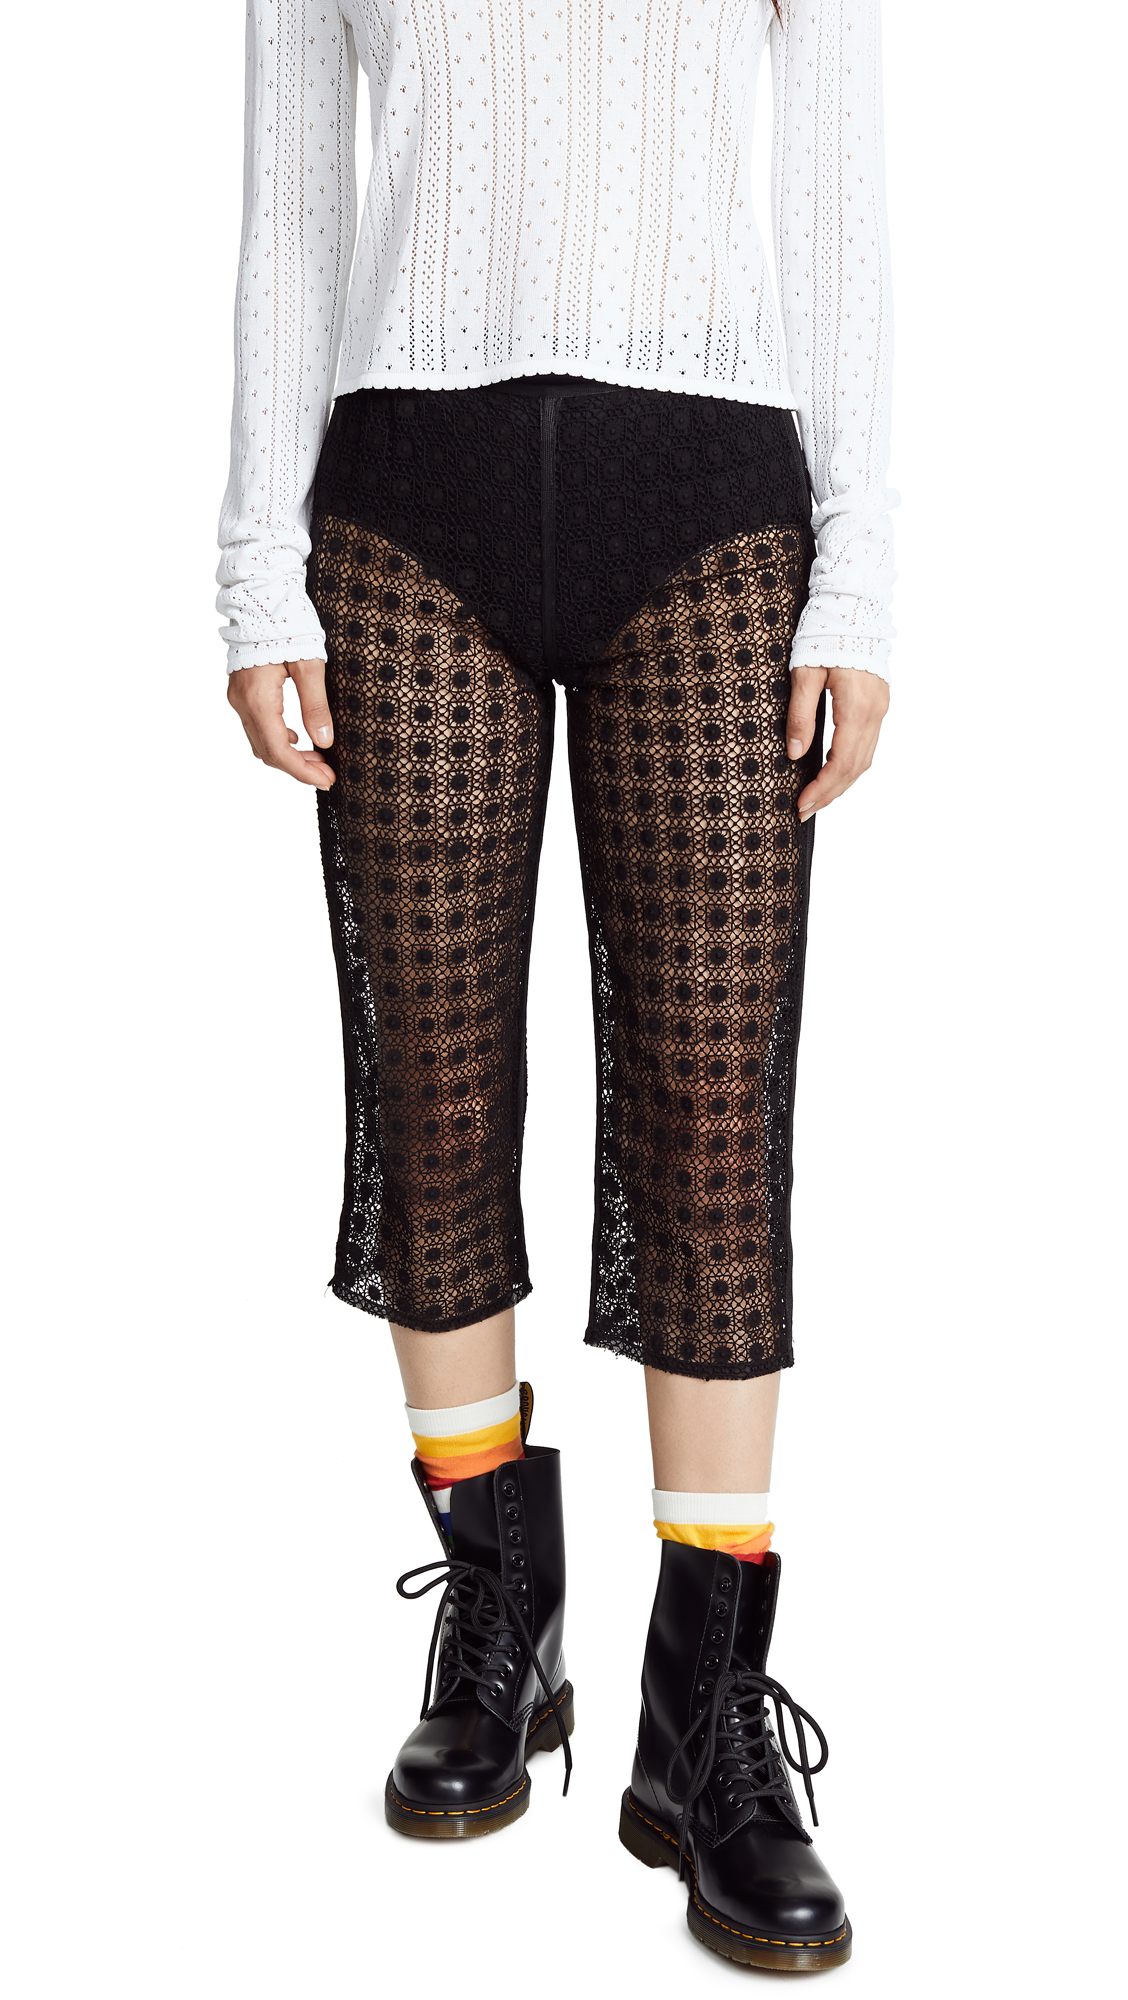 Marc Jacobs Redux Grunge Cropped Pants - Black